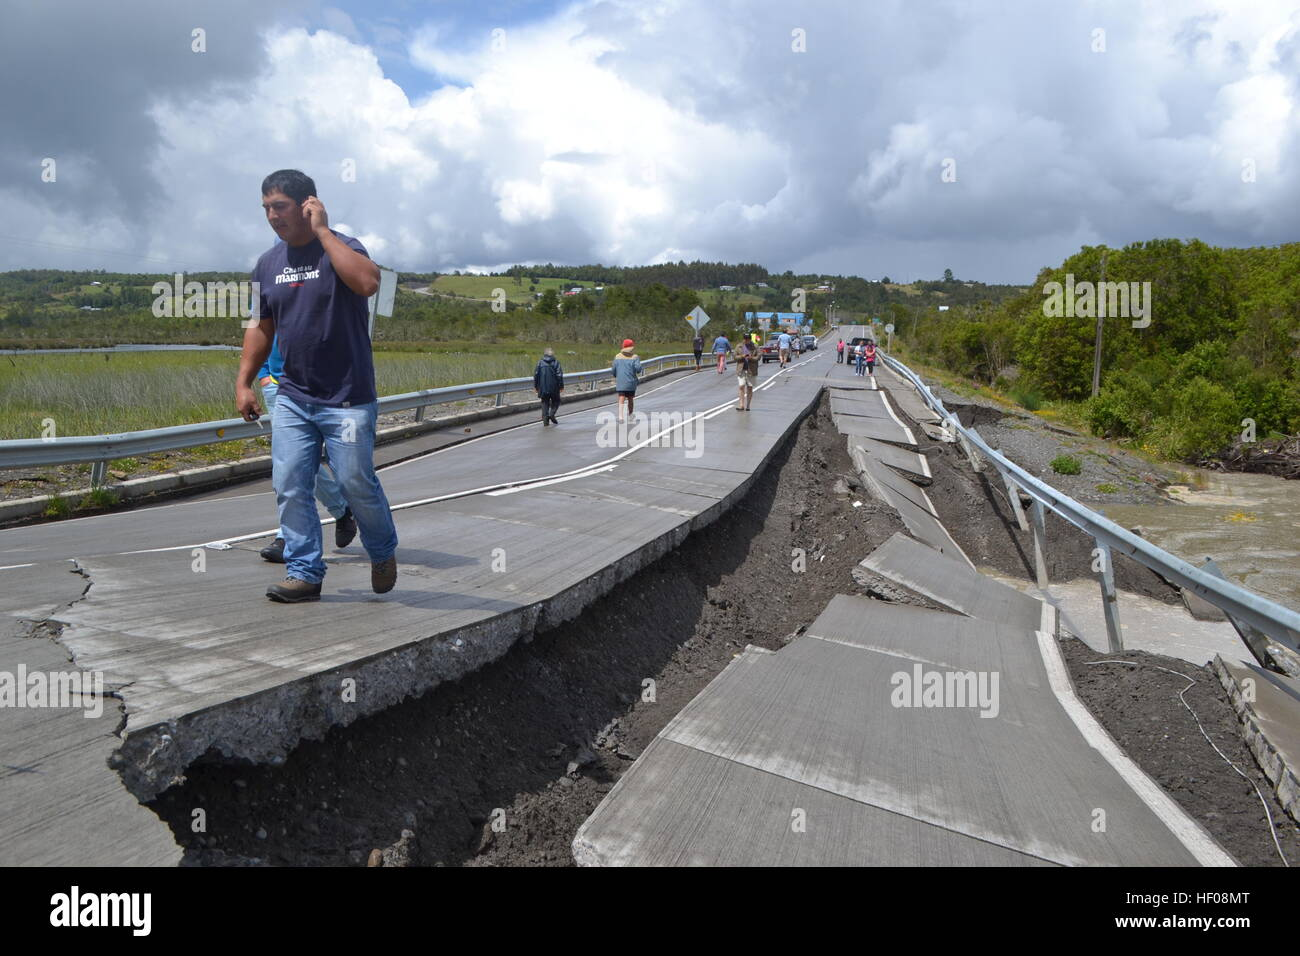 Chiloe province, Chile. 25th December, 2016. People walk on Highway 5 after an earthquake in Chiloe province, Chile, - Stock Image